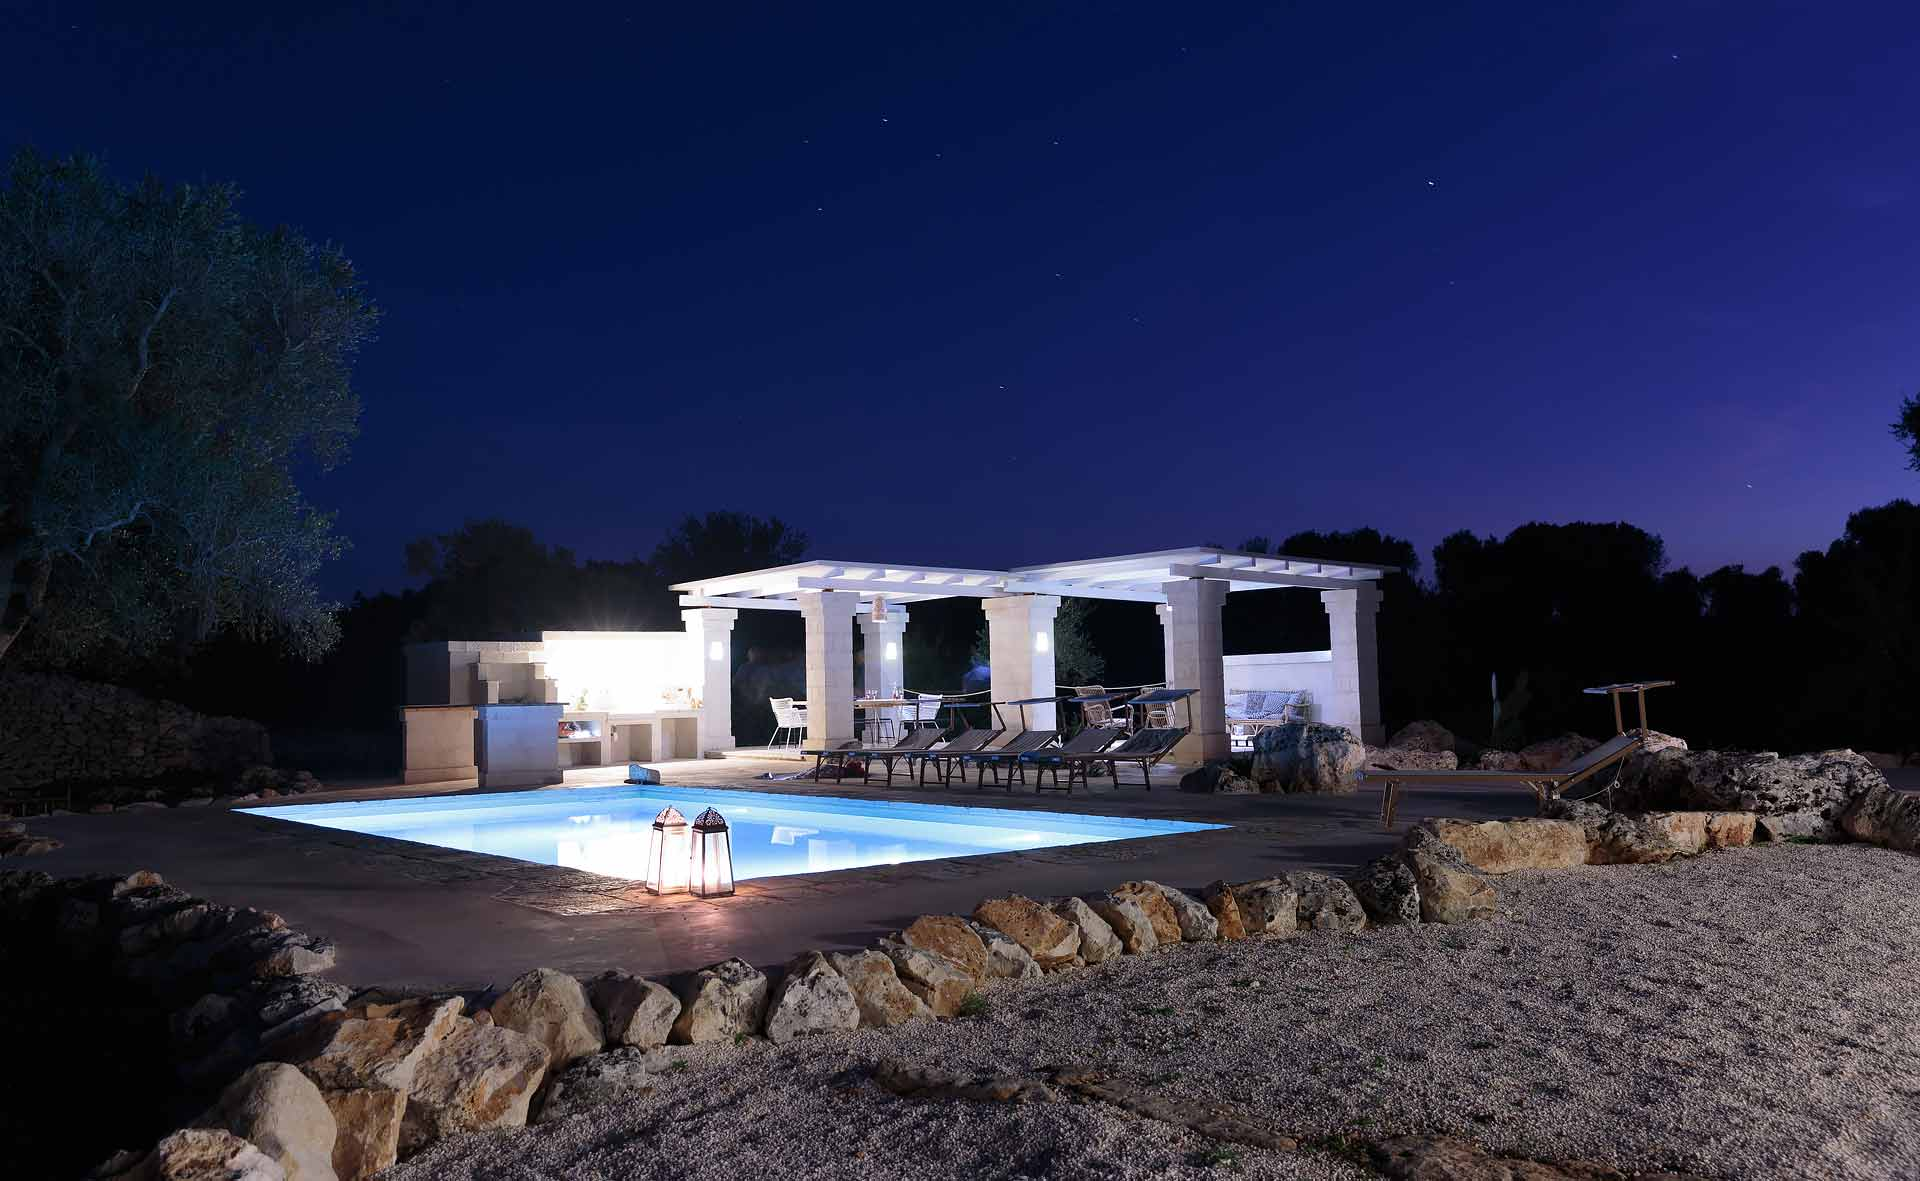 The pool of our villa for rent in Ostuni, Puglia